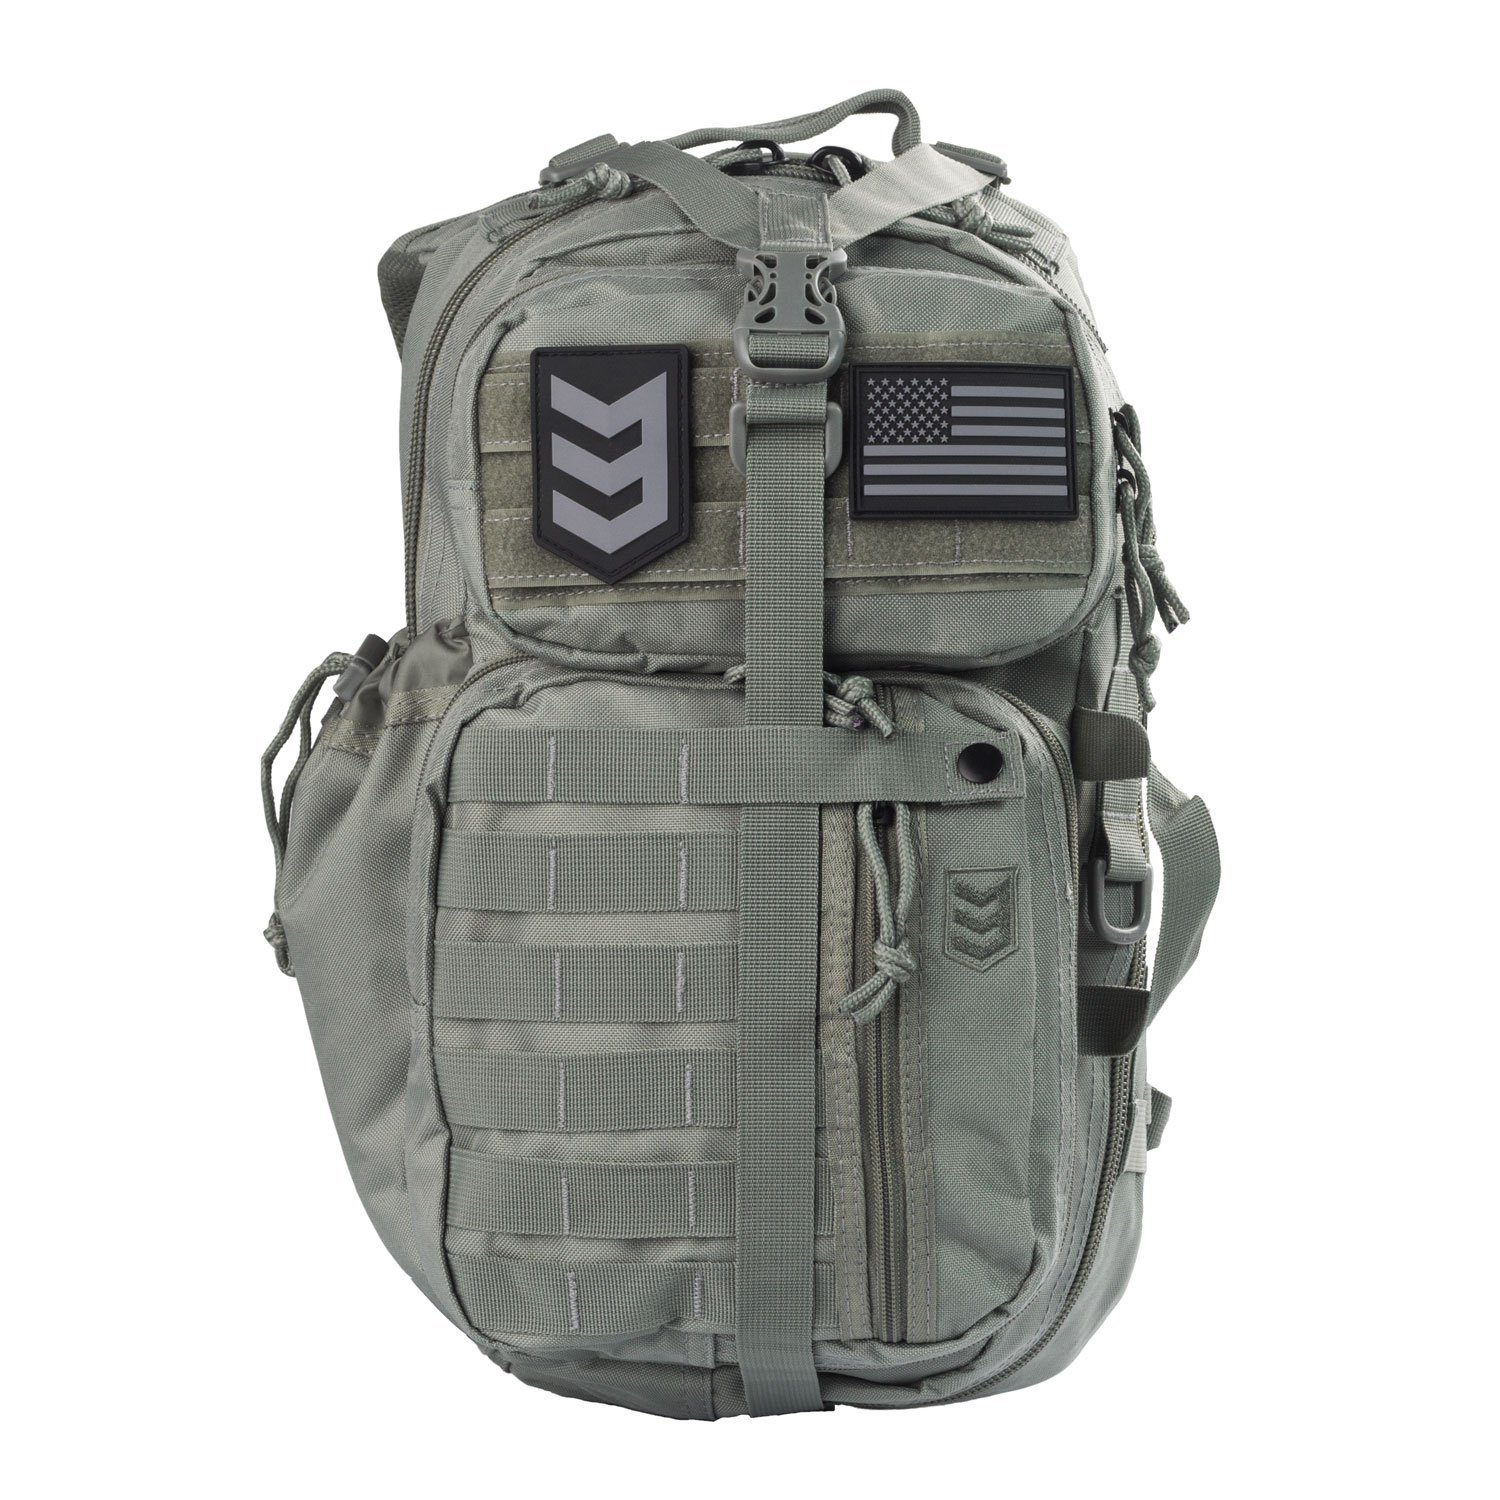 ef9395667760 Buy wholesaleFreeshipping,Rescuer Gear,Molle Tactical Go Bag ...